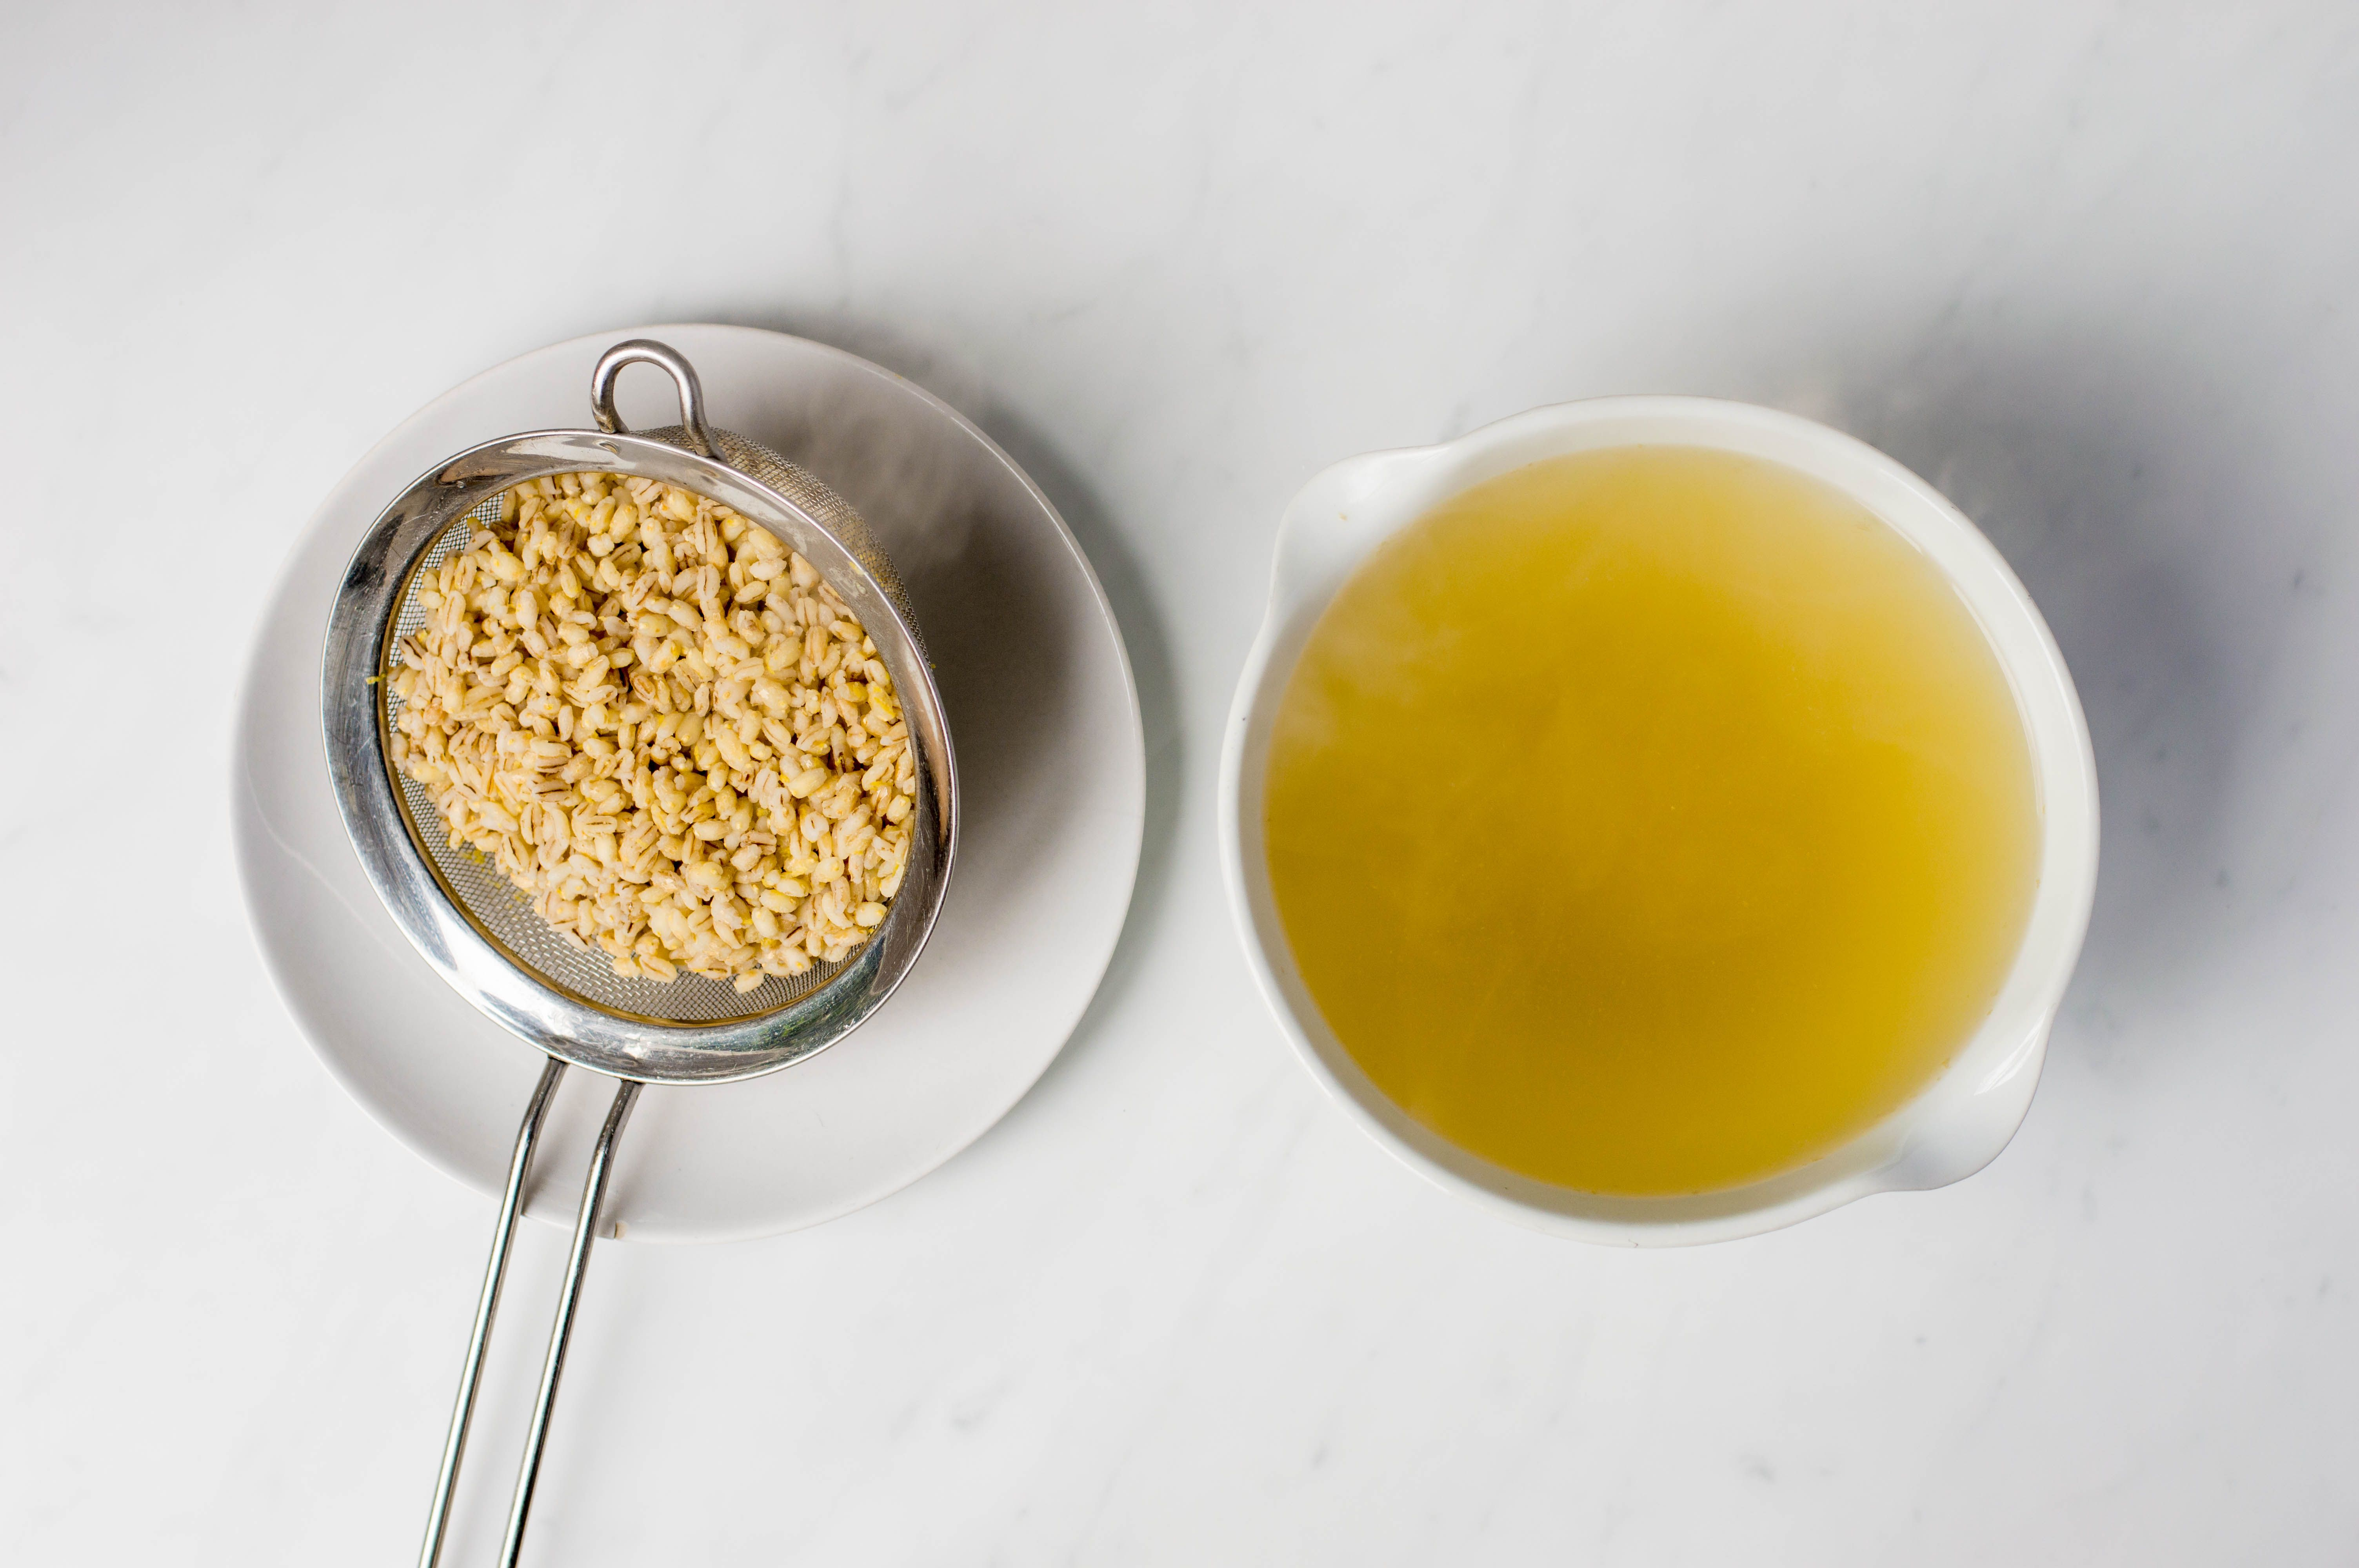 Barley in a colander next to strained liquid in a bowl